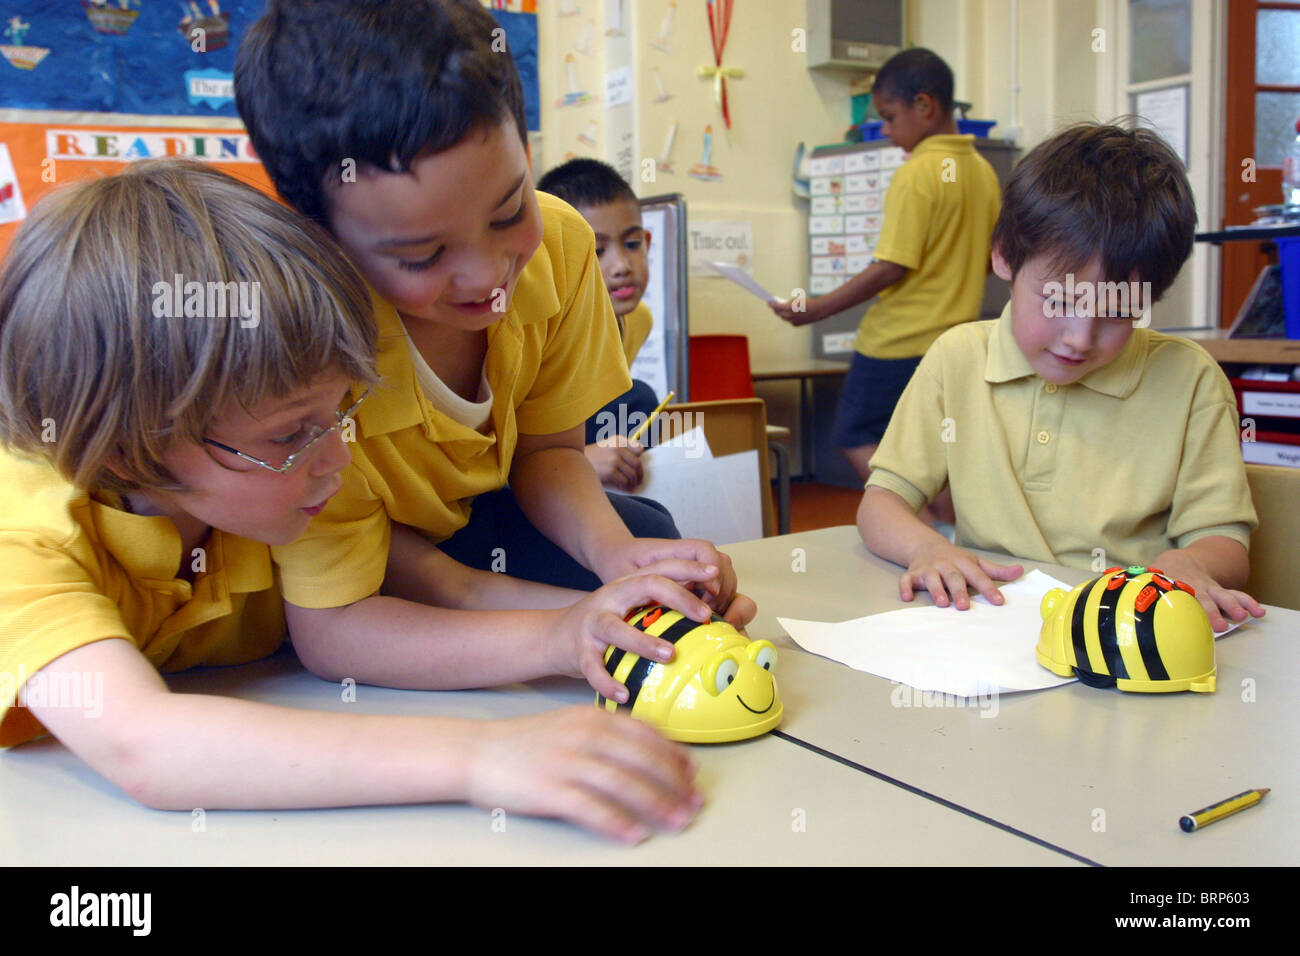 Primary School Children In Classroom Playing With Wind Up Bumble Bee Toys